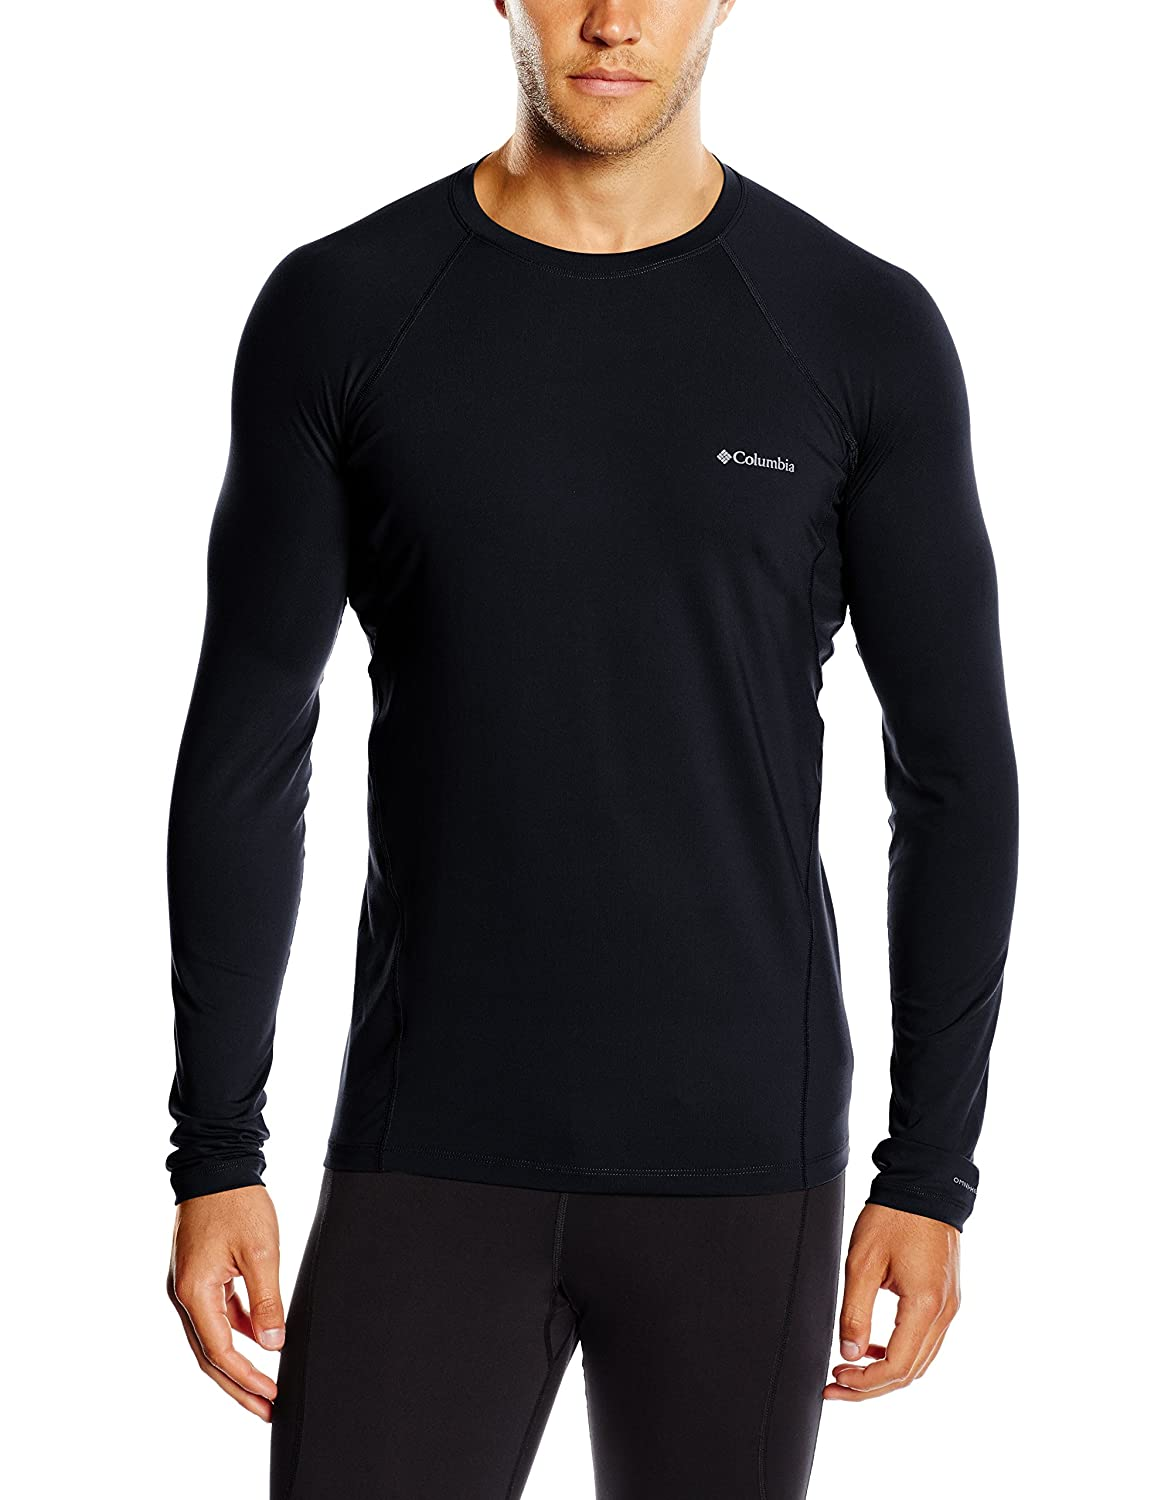 Columbia Men's Midweight Stretch Long Sleeve Top Baselayer Columbia Sportswear